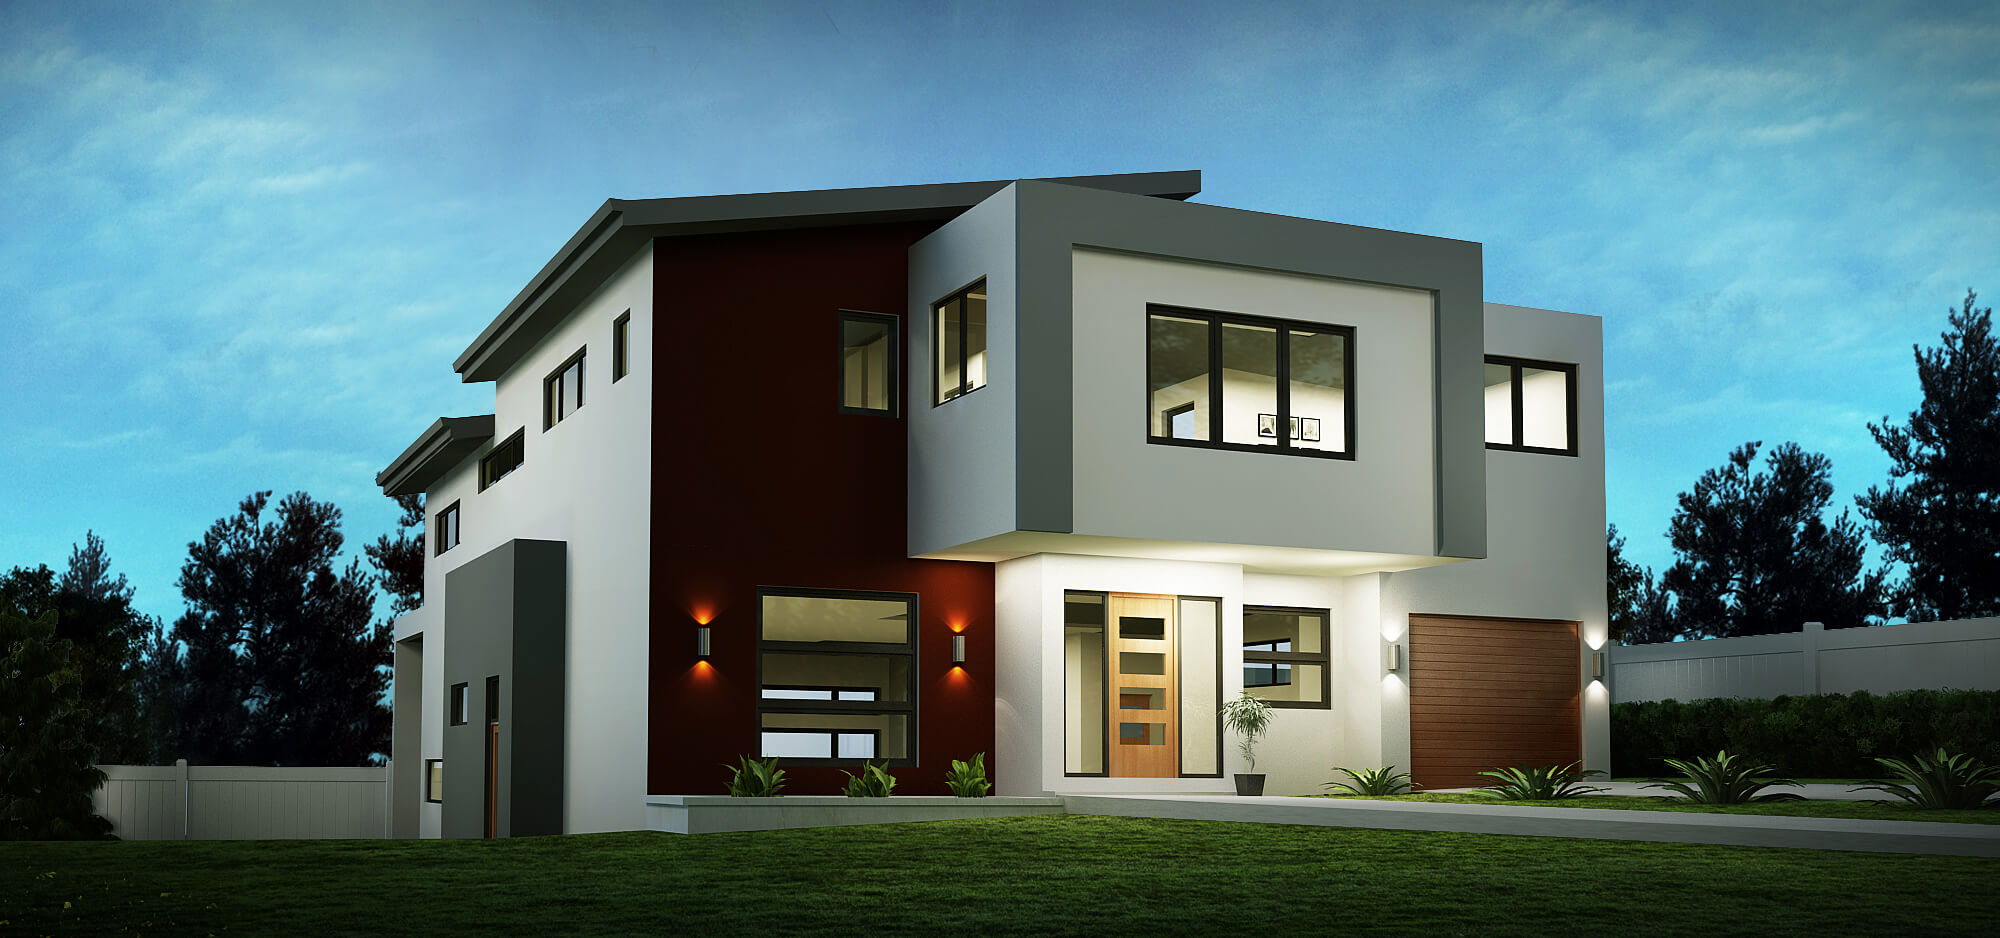 Sloping house block designs custom home designs for Custom home design ideas